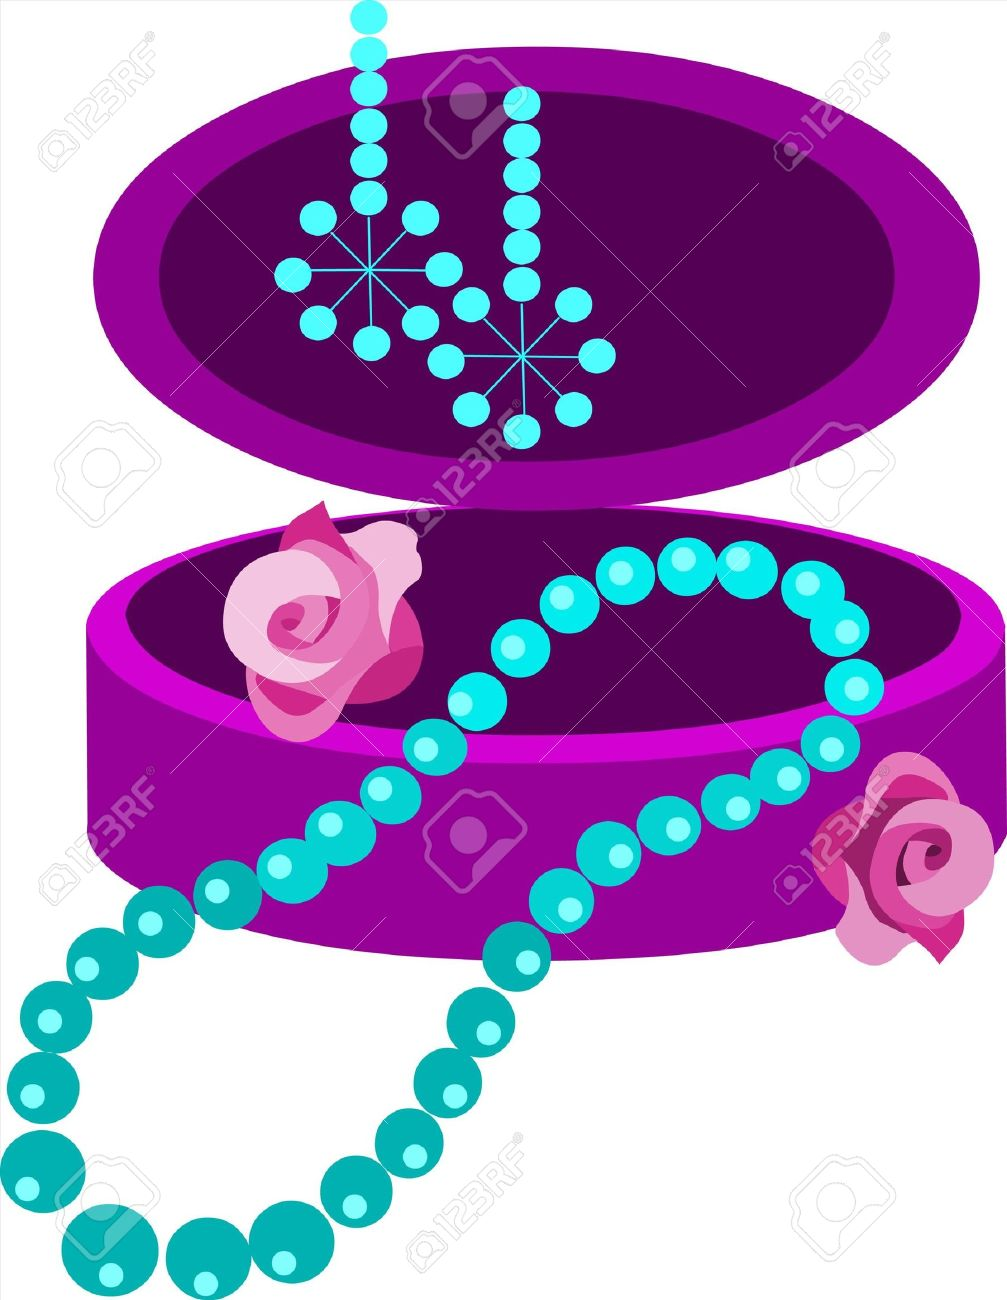 Jewelry clipart animated, Jewelry animated Transparent FREE.